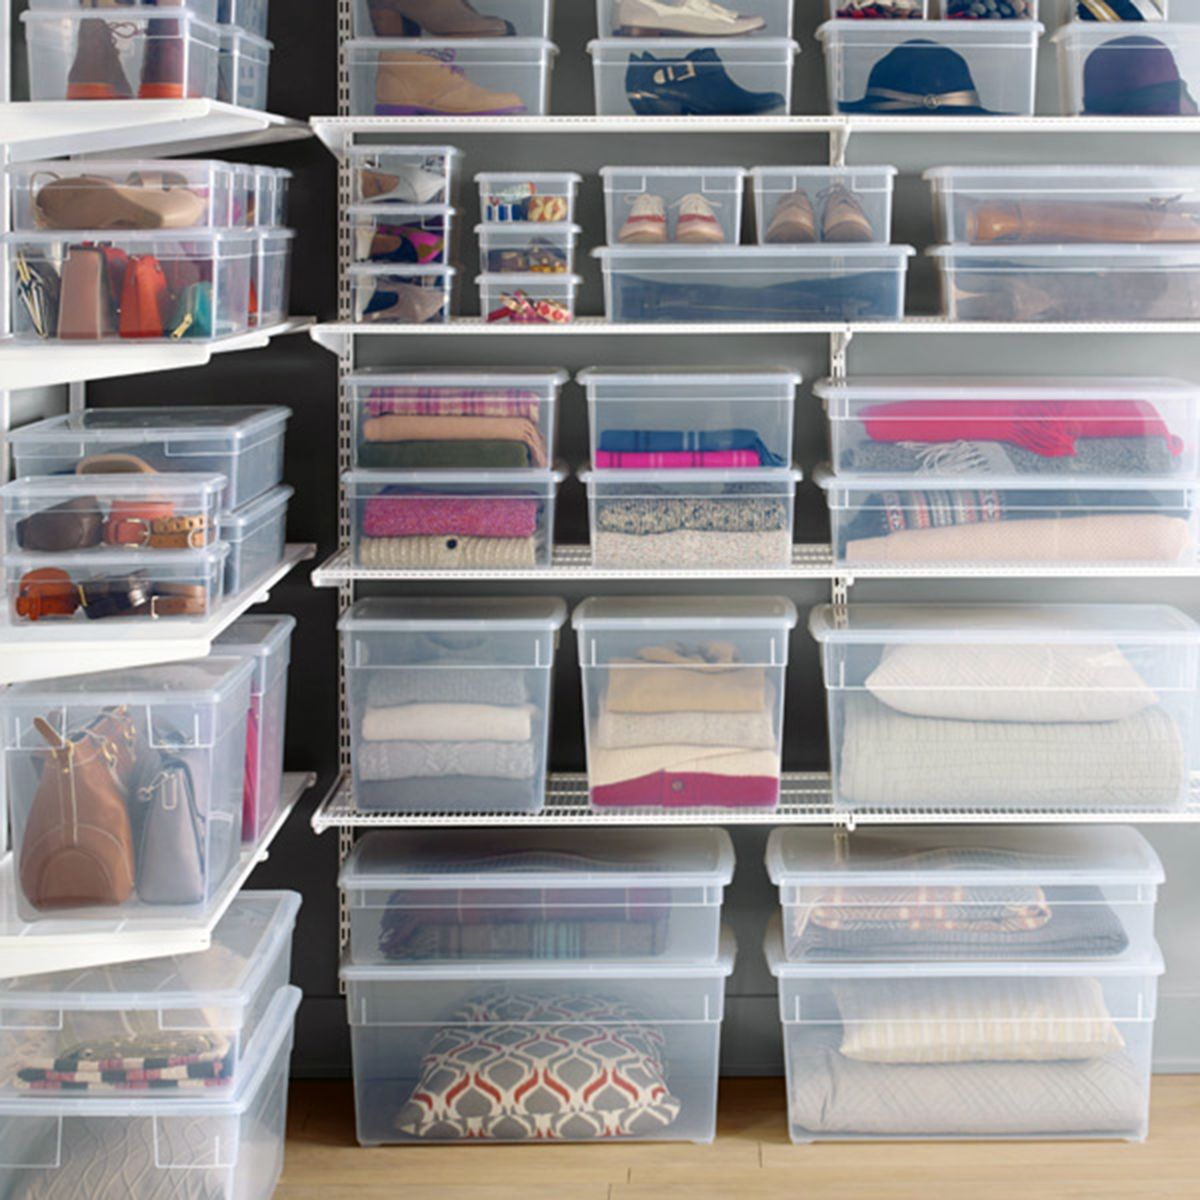 how-to-organize-your-clothes-wardrobe-storage-shelves-handbags-shoes-folded-transparent-boxes-offseason.jpg